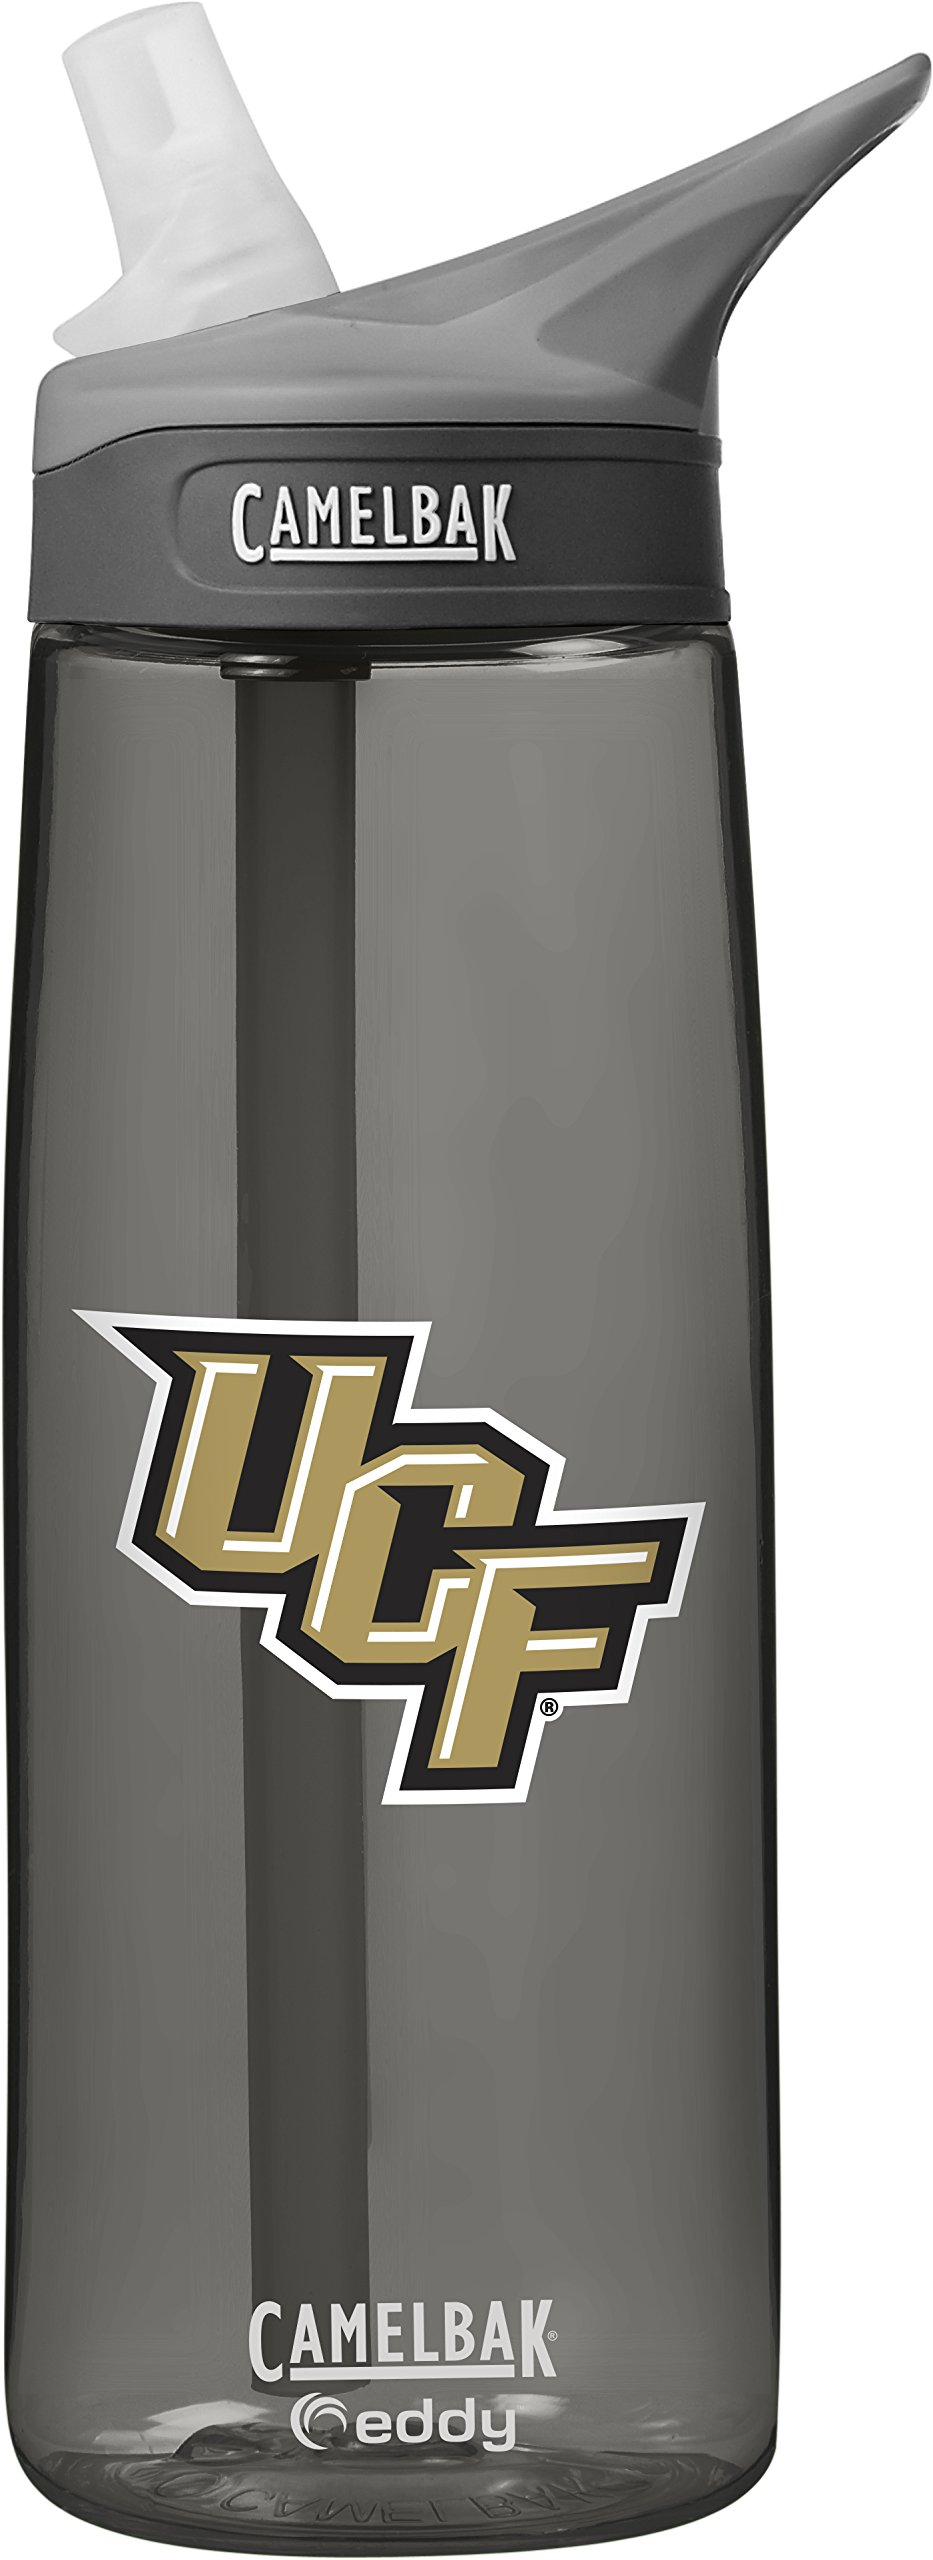 CamelBak NCAA Central Florida Golden Knights Unisex Eddy 75L Collegiate Water Bottle, Charcoal, 75 Liter